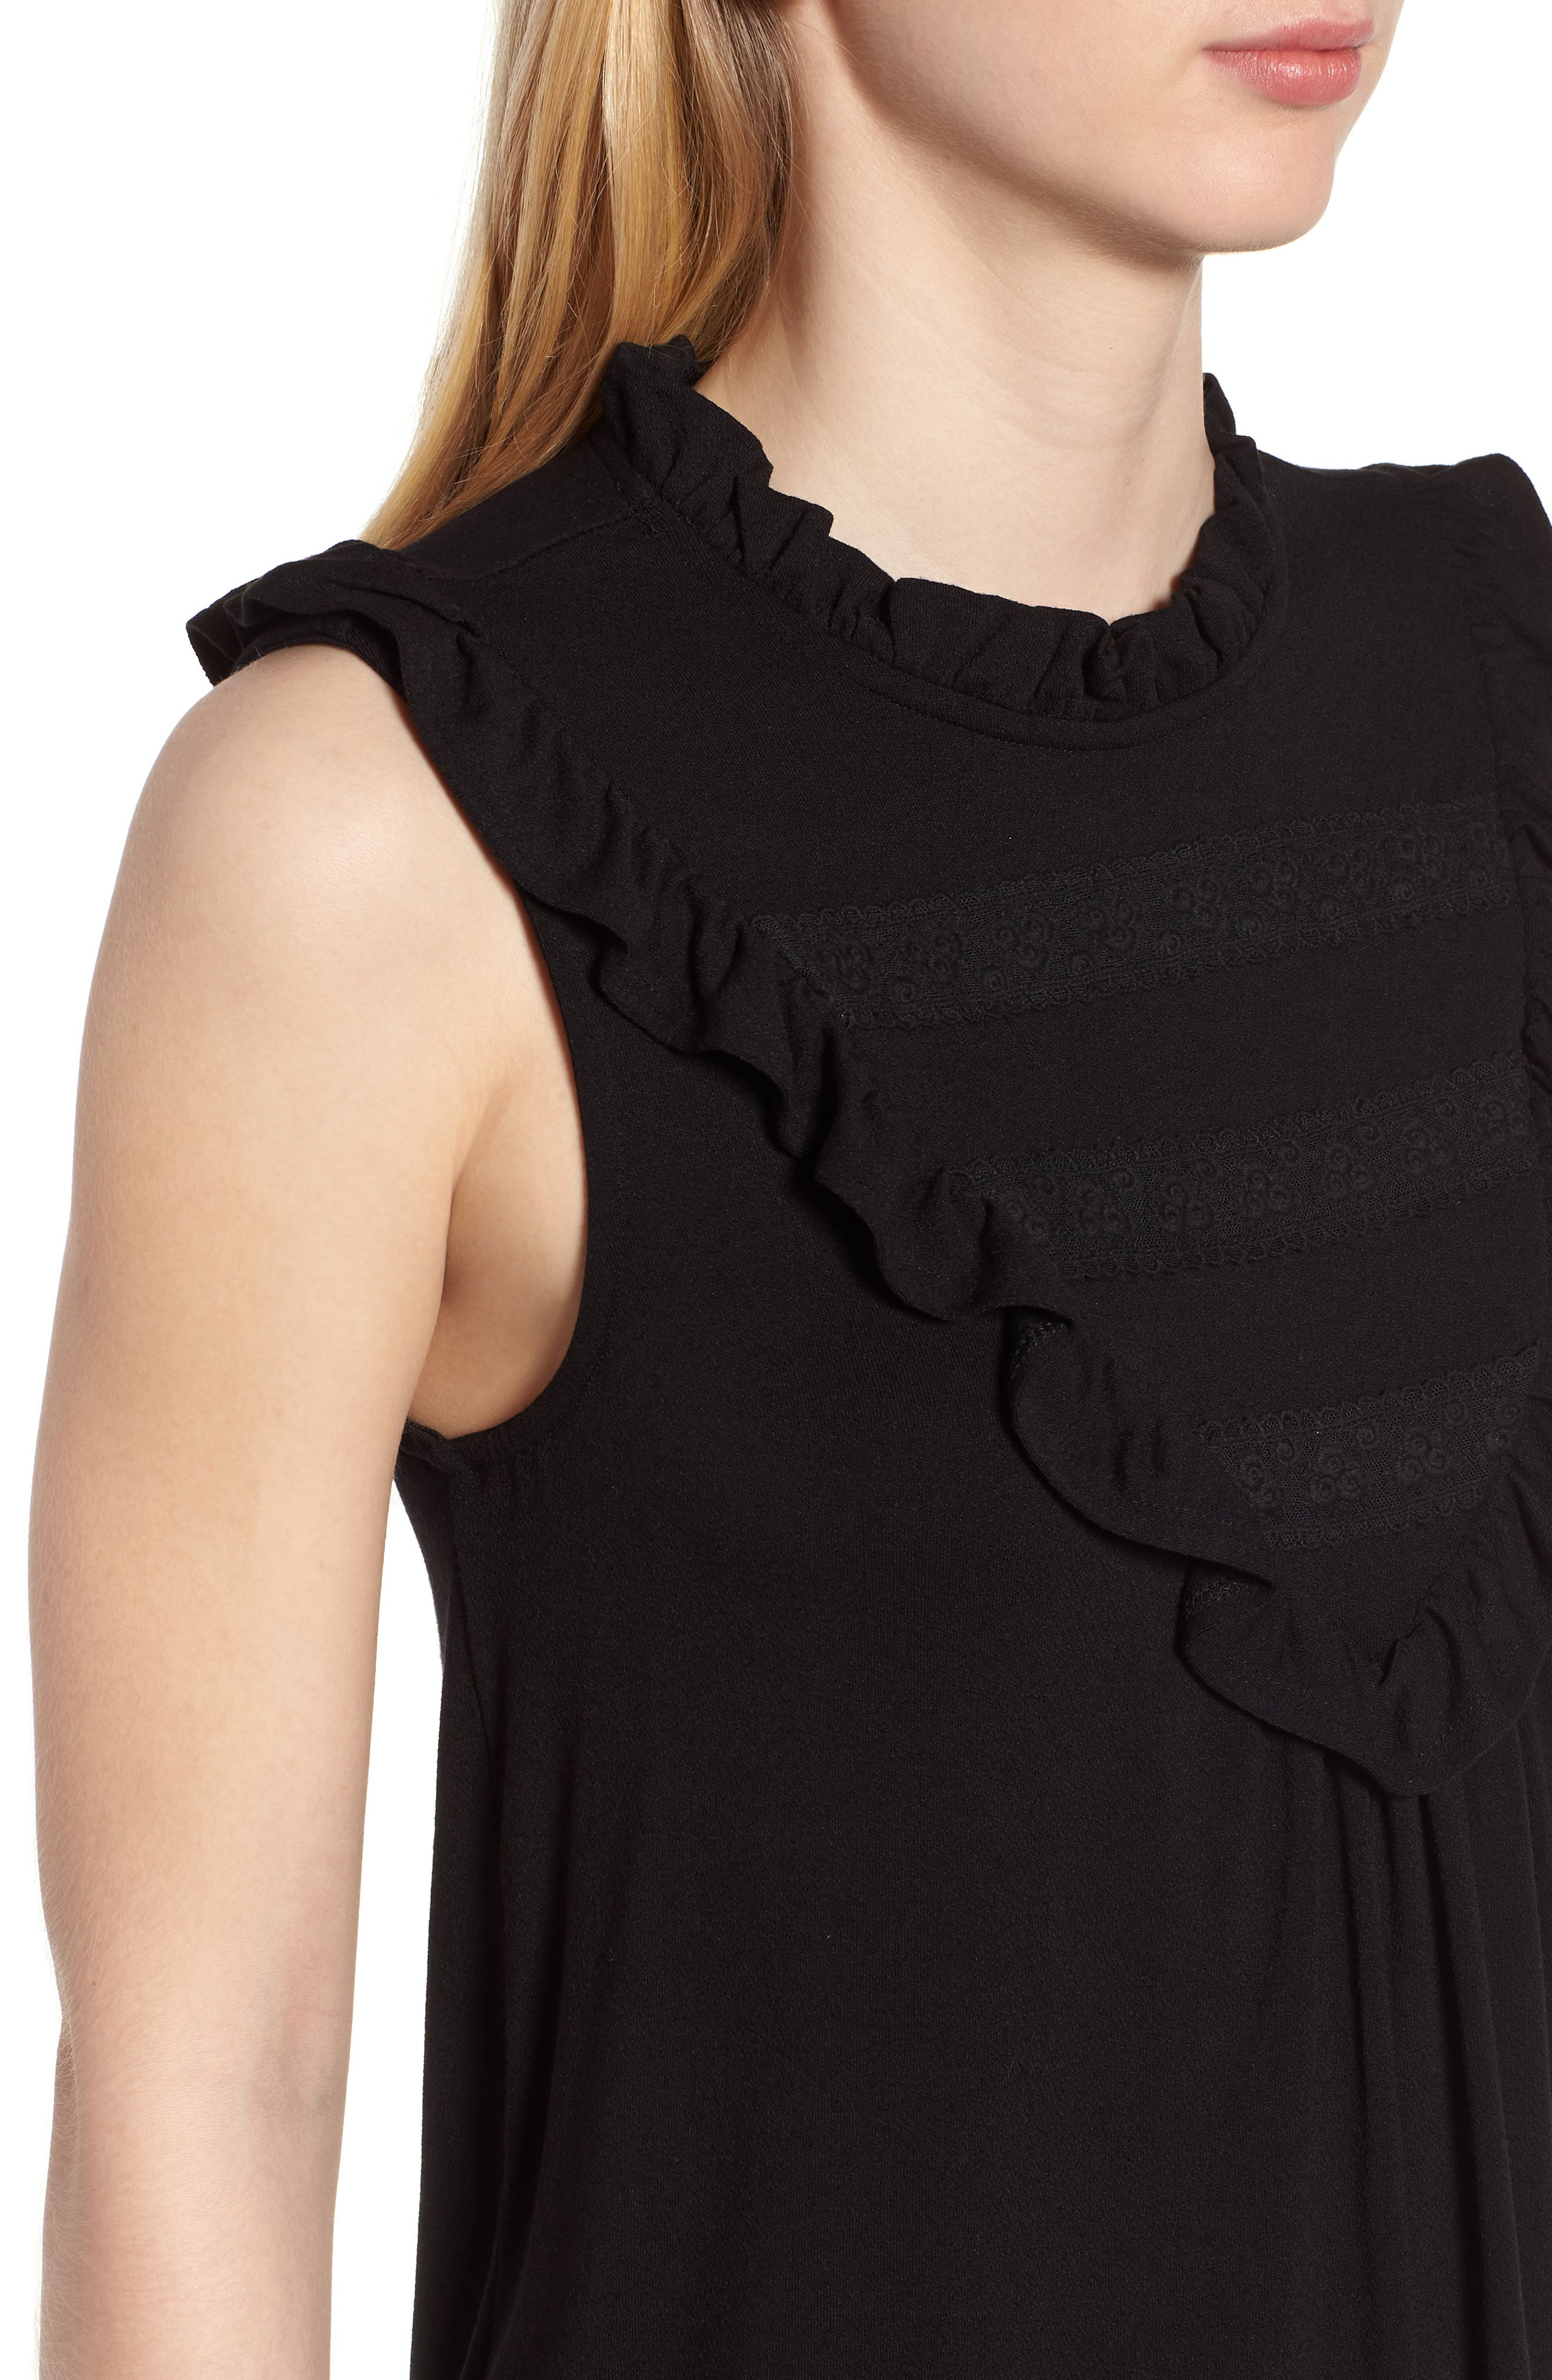 Lace Inset Tank Top,                             Alternate thumbnail 4, color,                             001